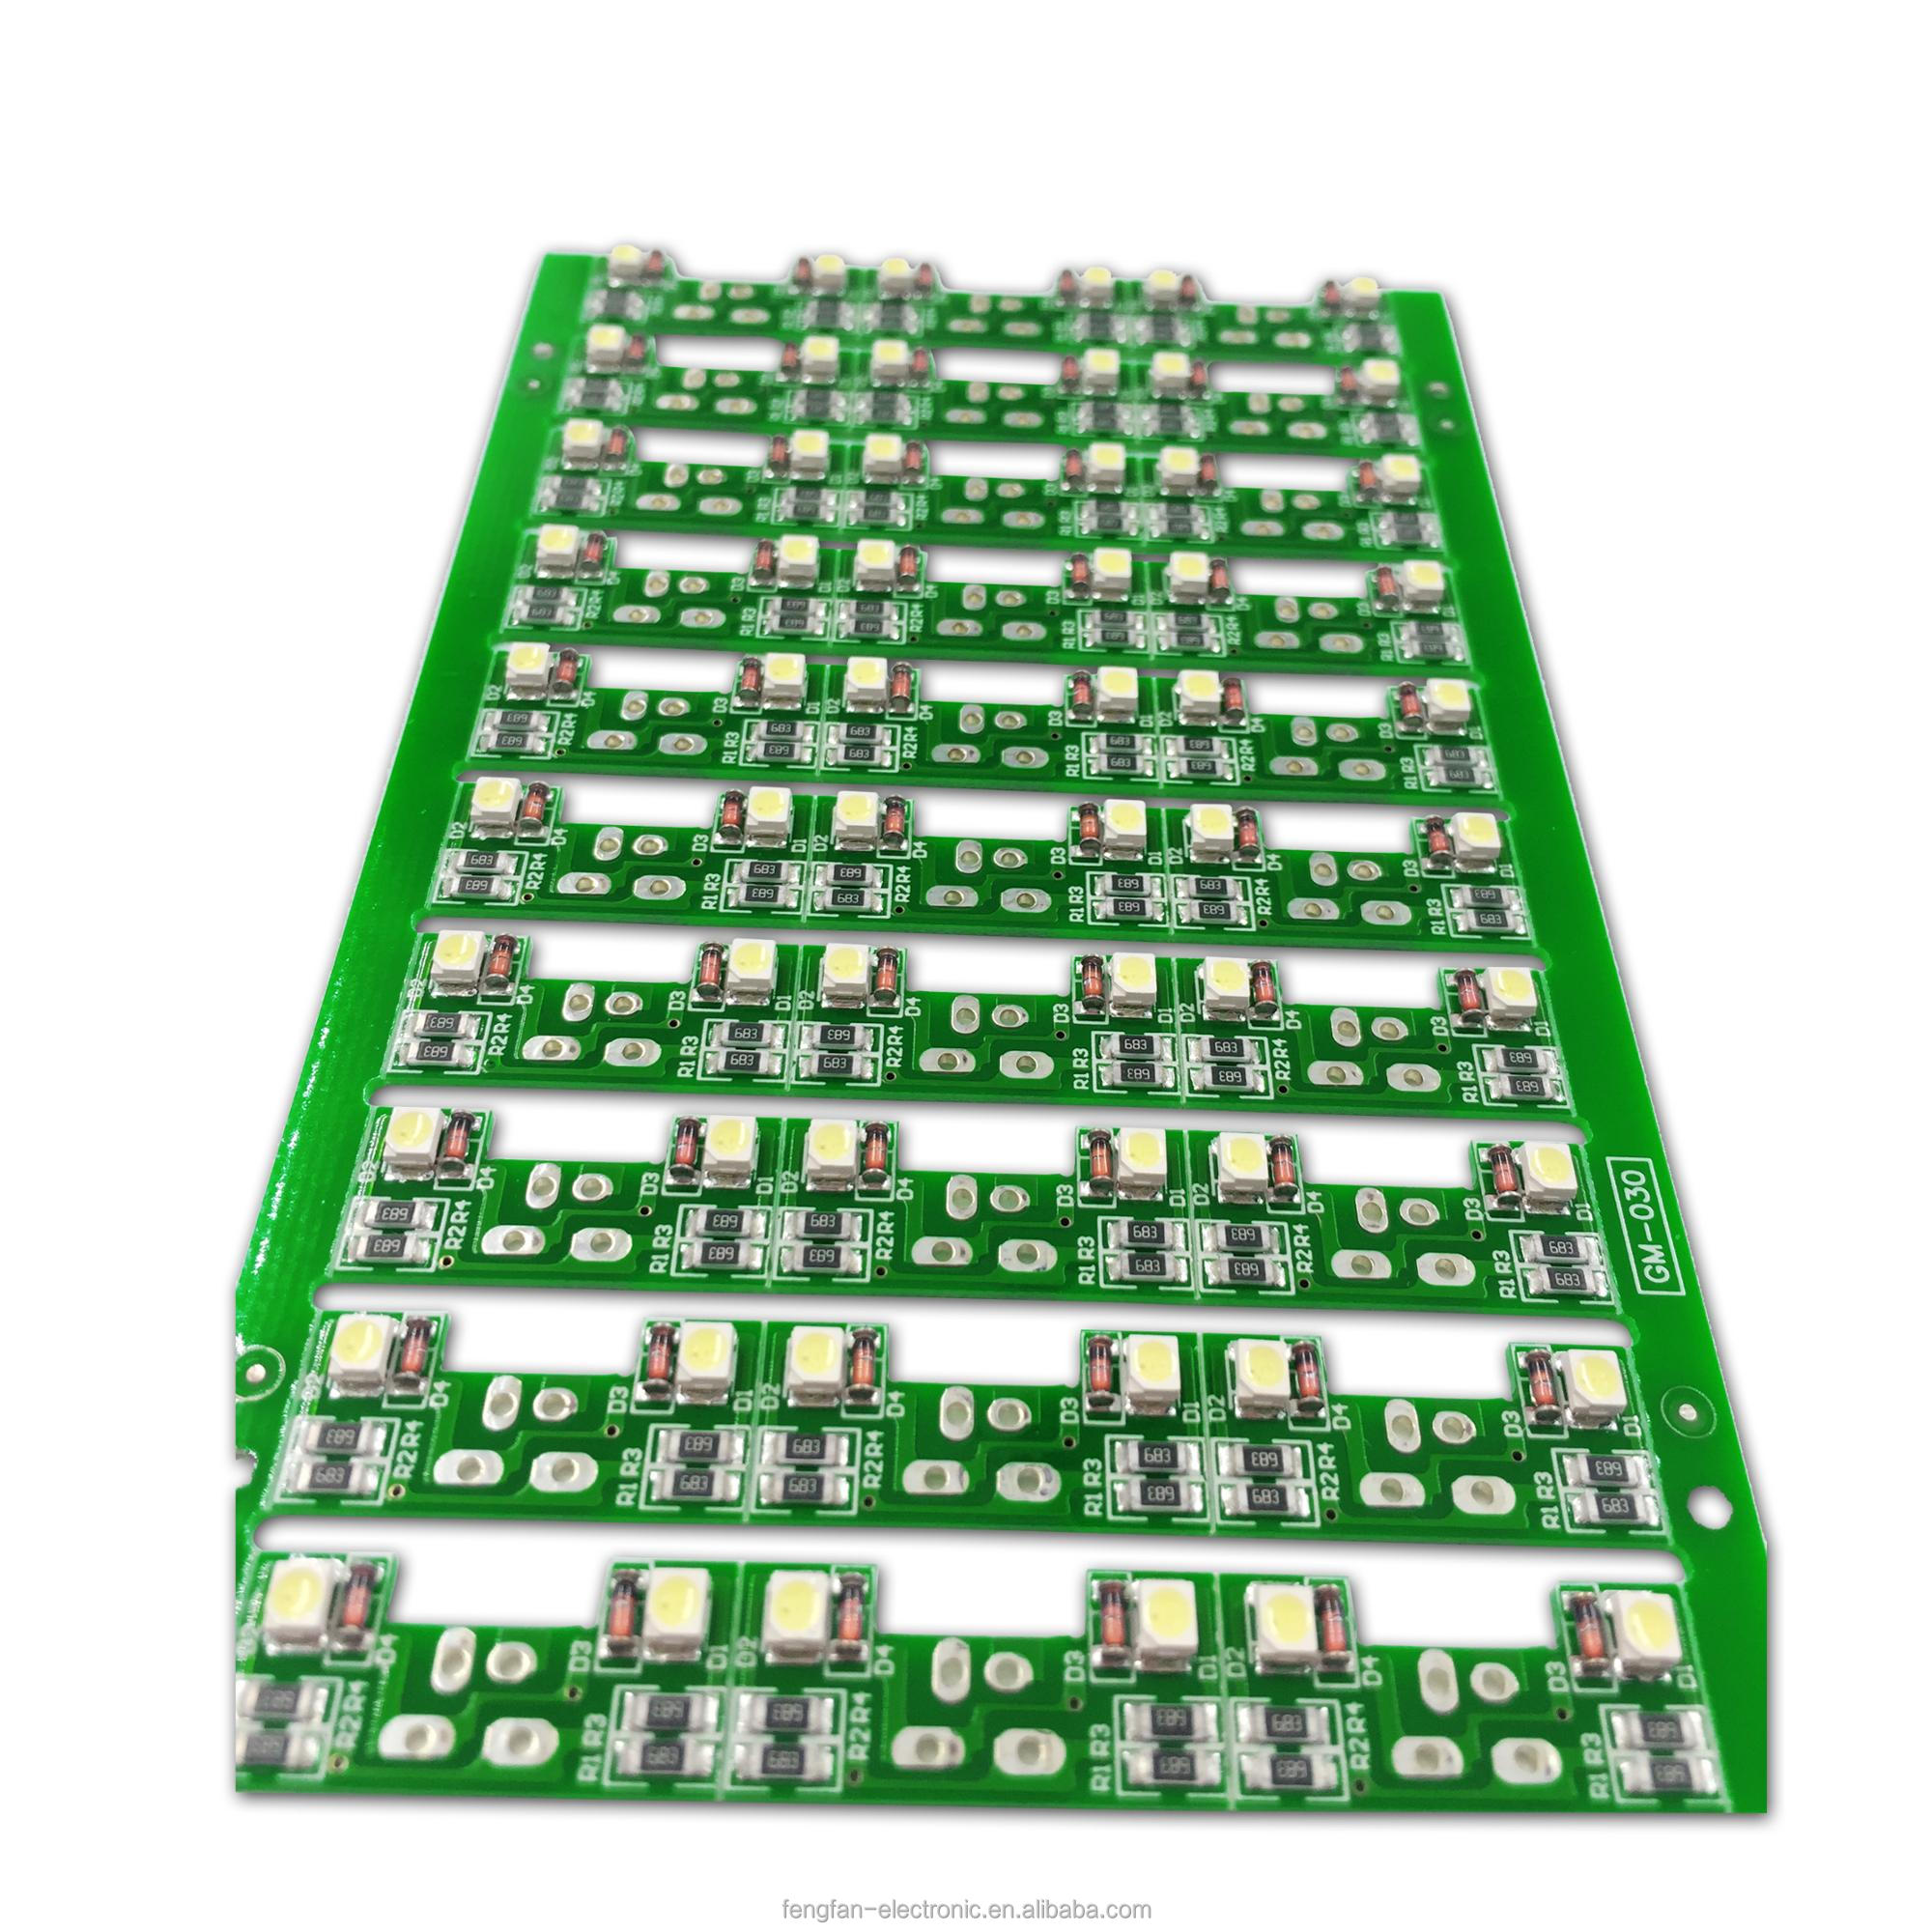 Flexible Pcb Boards Suppliers And Manufacturers Rigid Flex Circuit Board Examples At